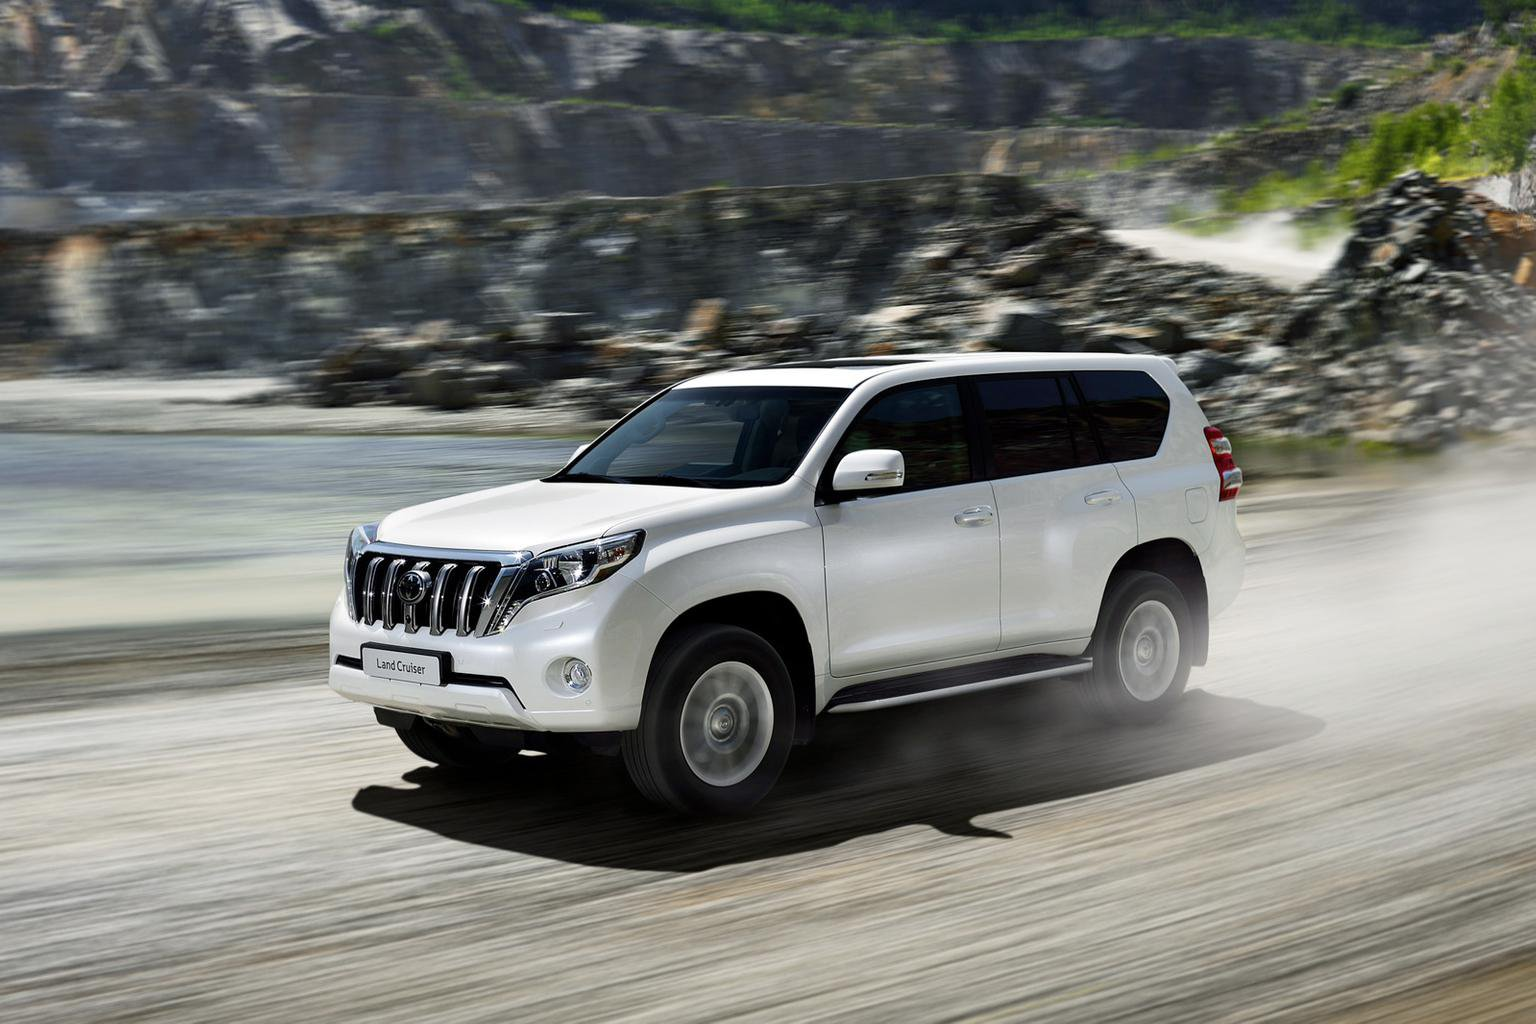 2014 Toyota Land Cruiser face-lift revealed